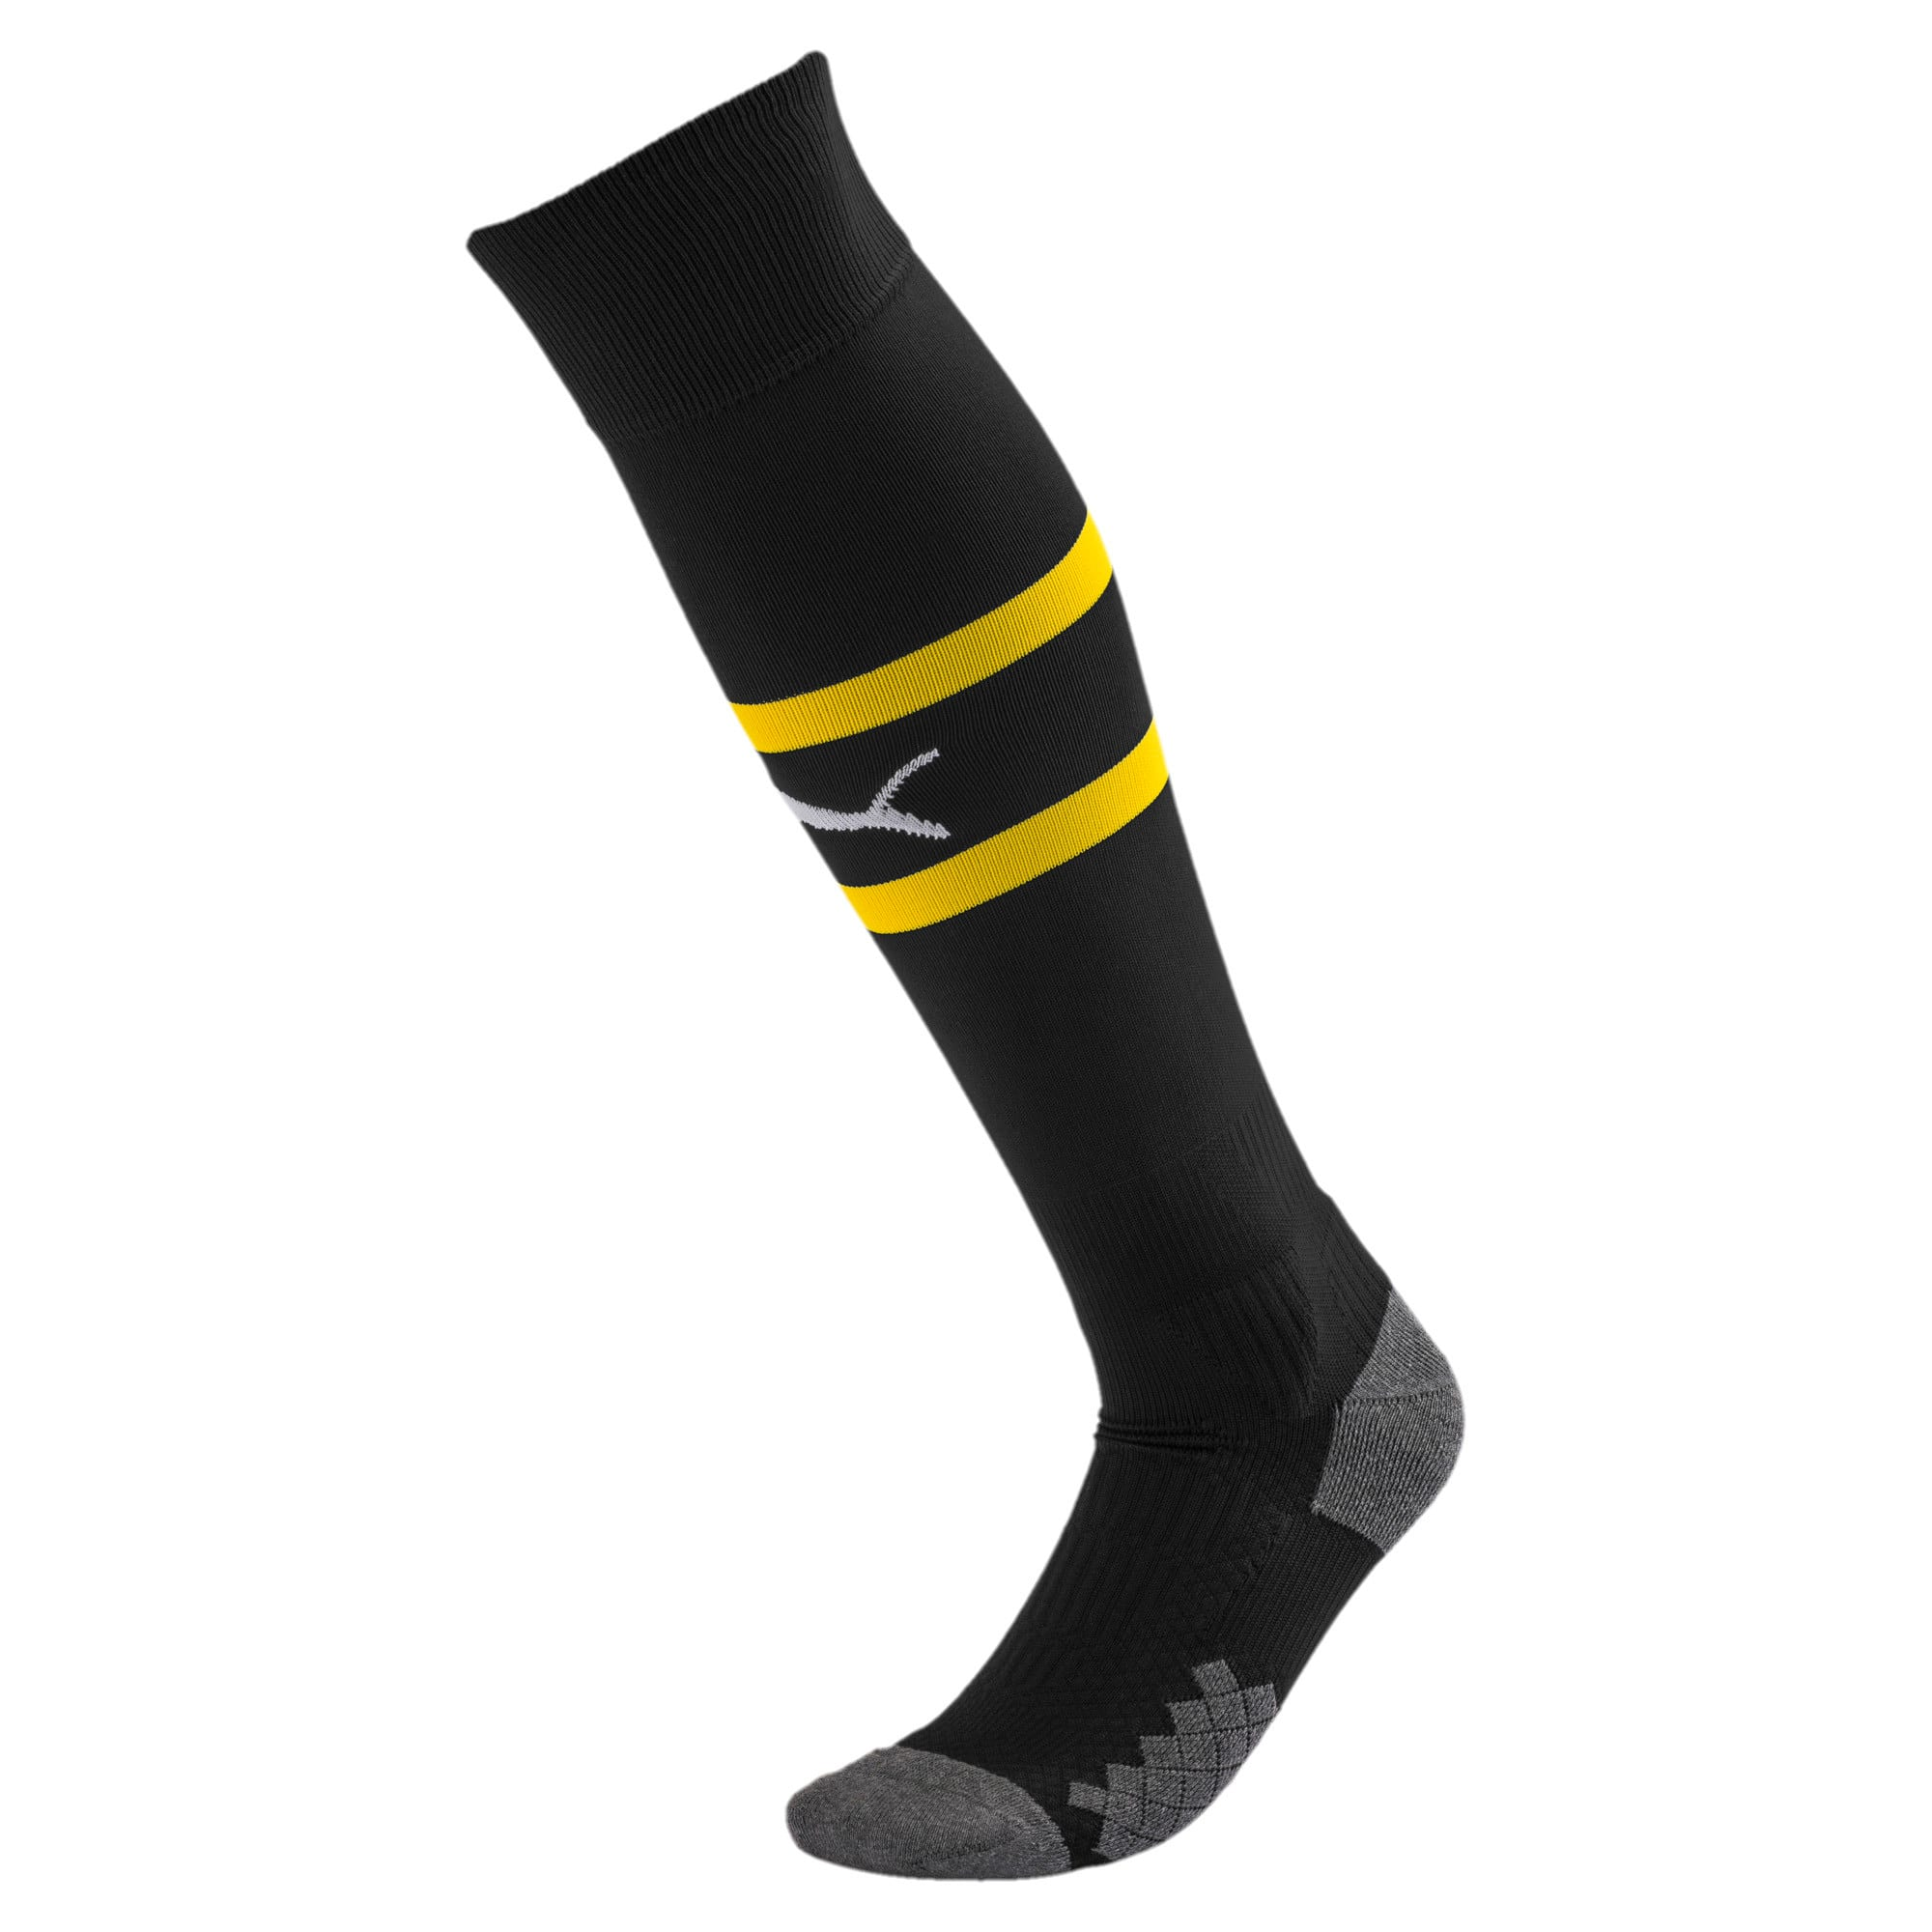 Thumbnail 1 of AC Milan Men's Band Socks, Puma Black-Cyber Yellow, medium